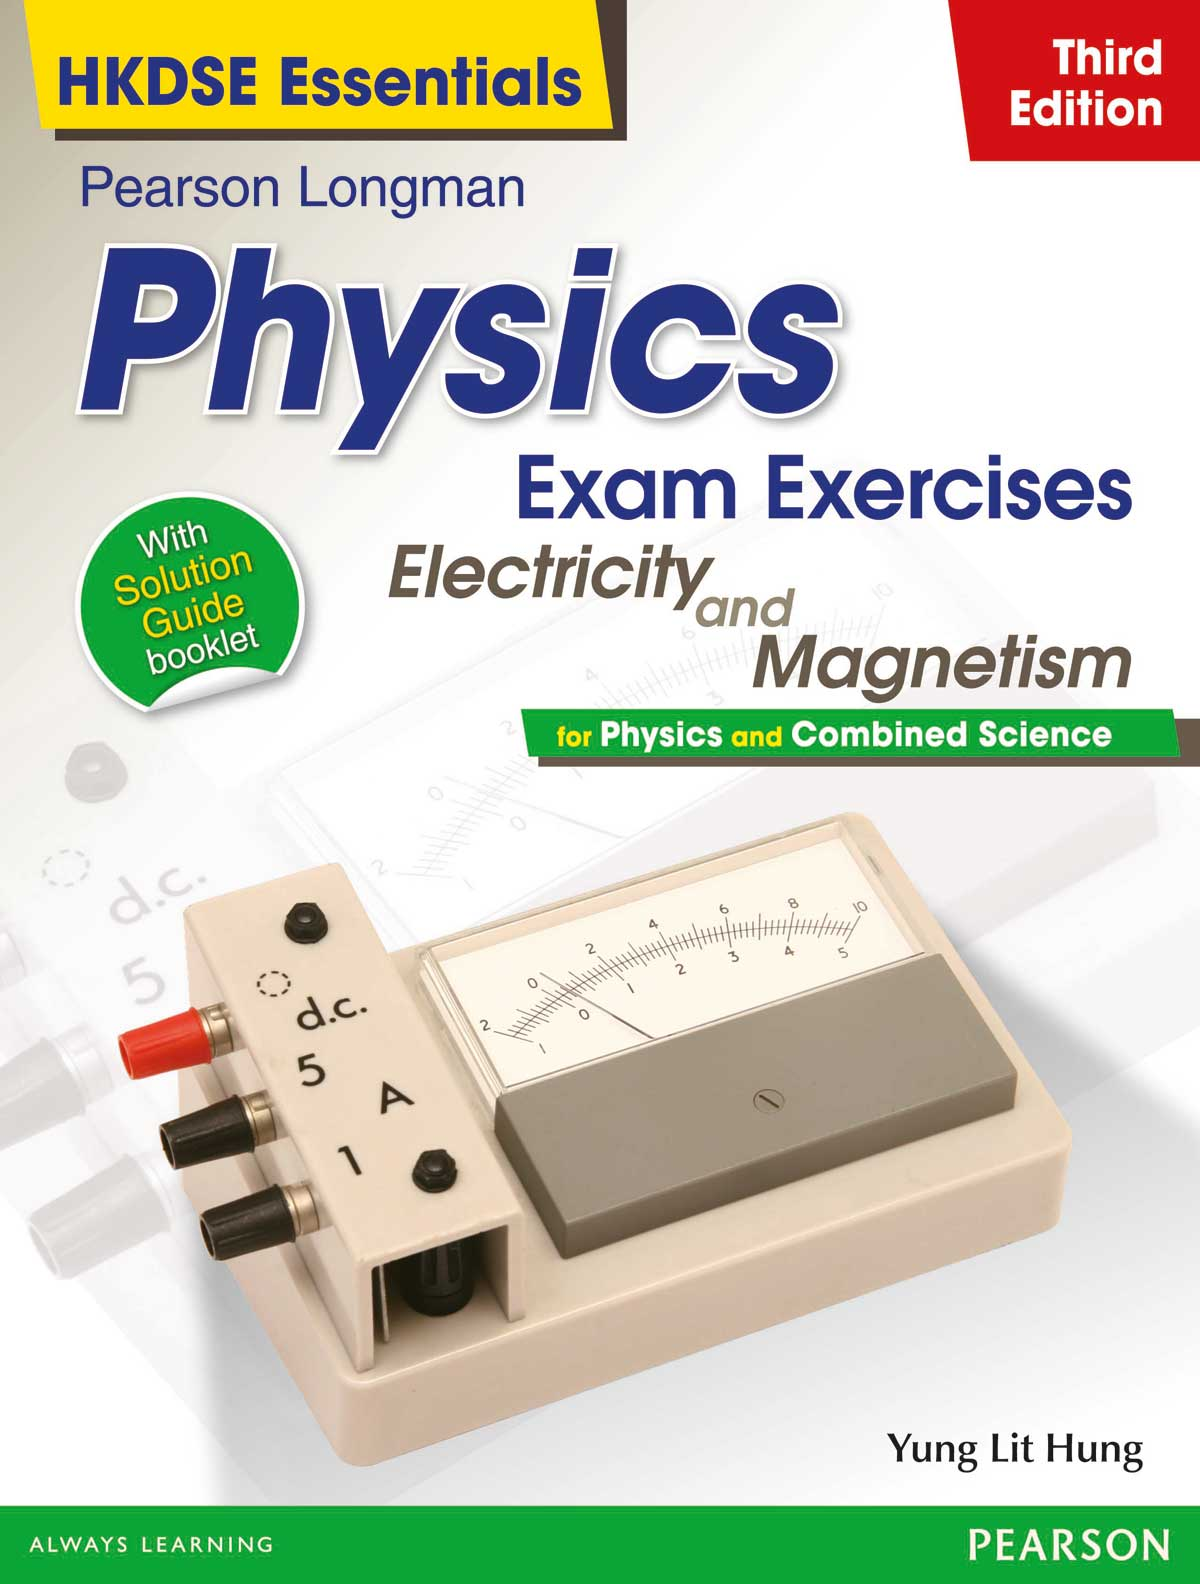 HKDSE Essentials: Physics Exam Exercises (Electricity and Magnetism) (3E)